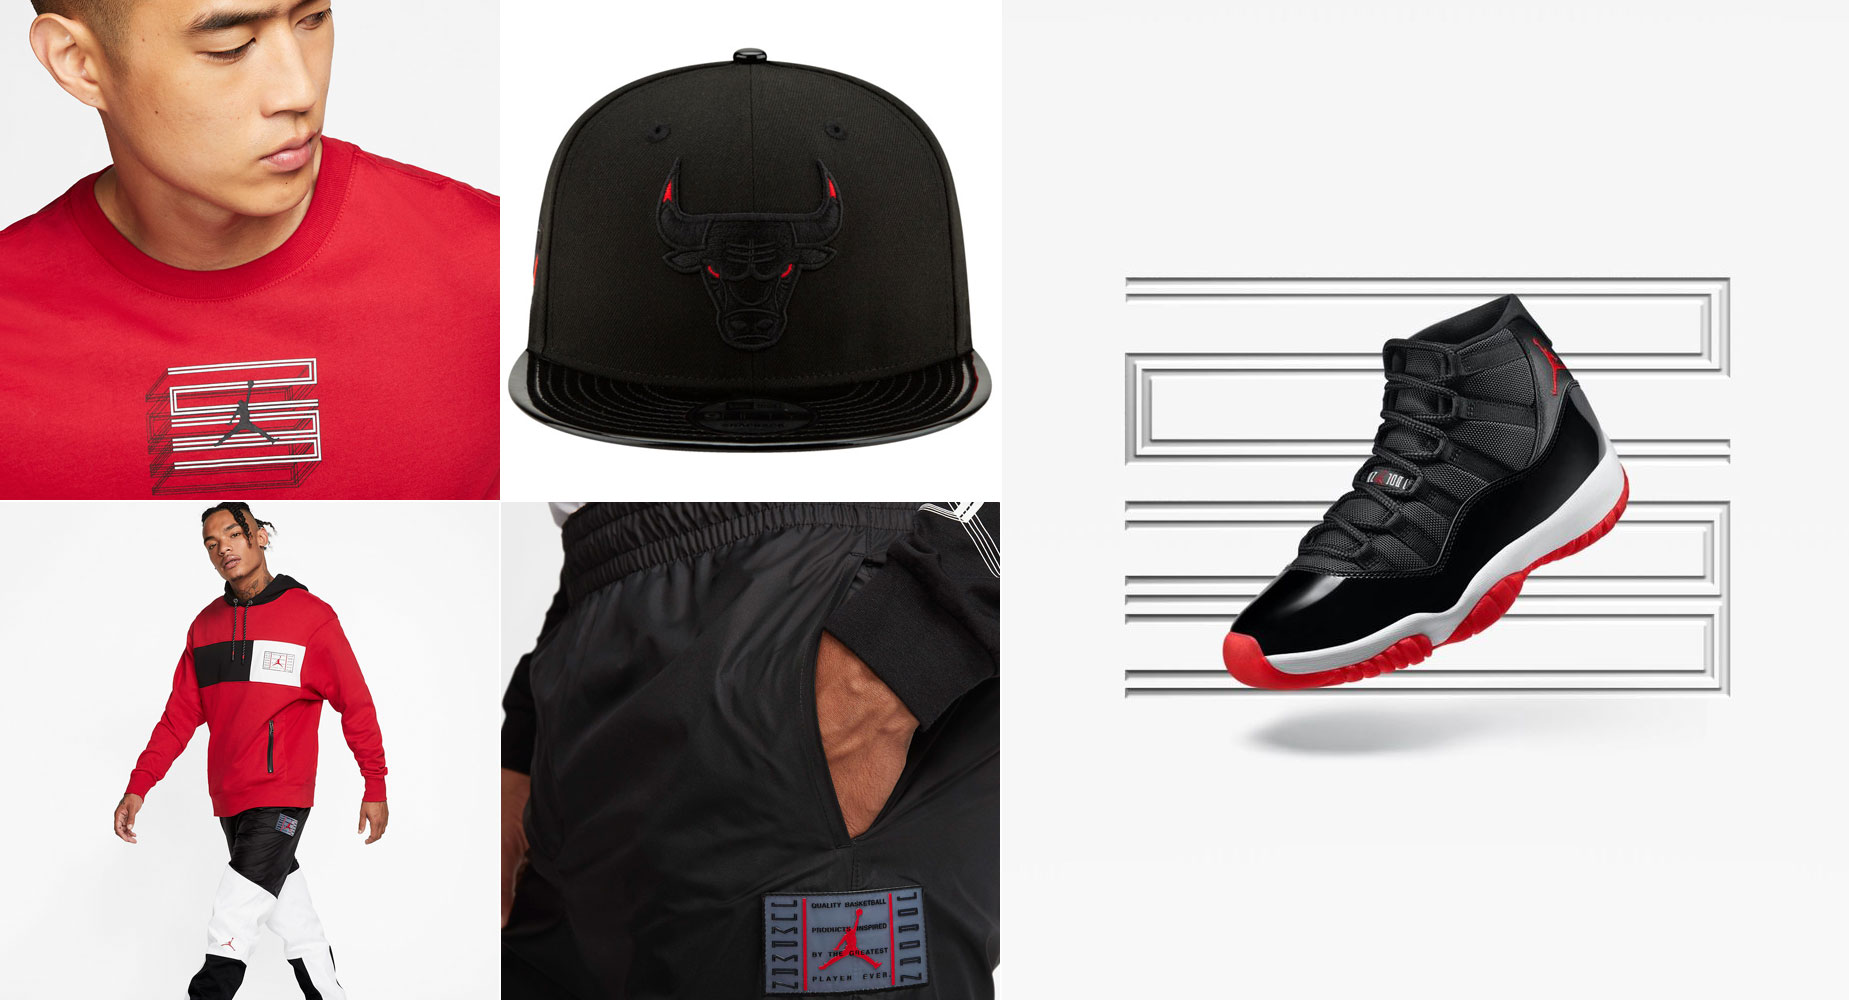 air-jordan-11-bred-2019-clothing-outfits